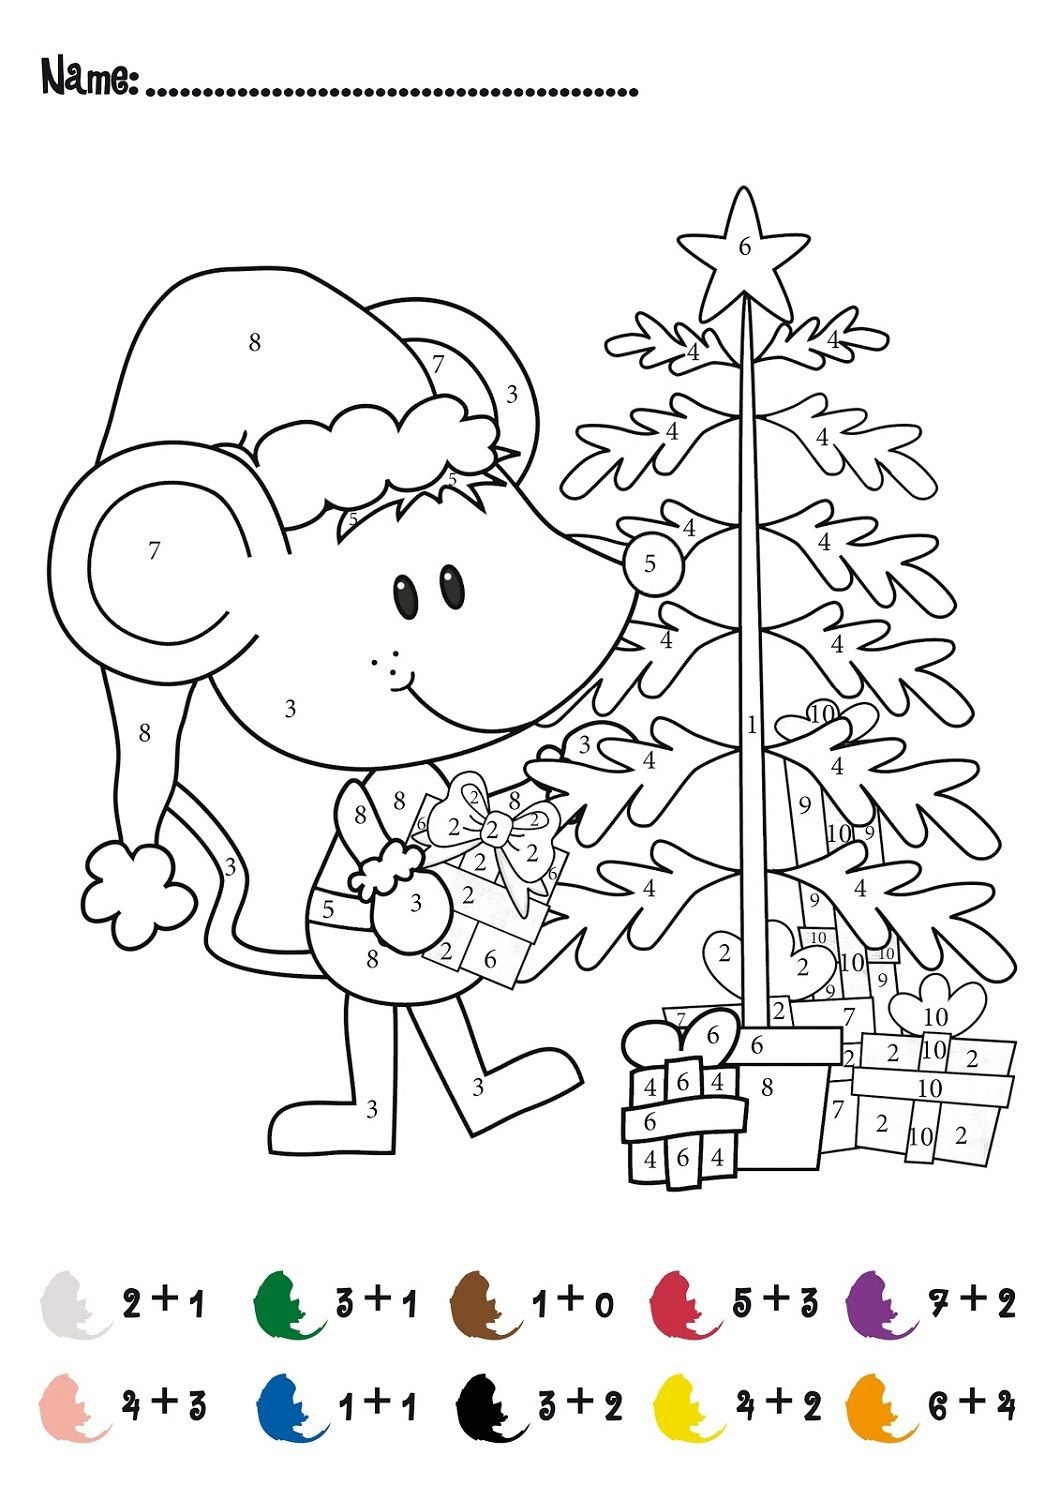 Coloring Pages : Multiplication Coloring Worksheets Colornumber - Free Printable Multiplication Color By Number